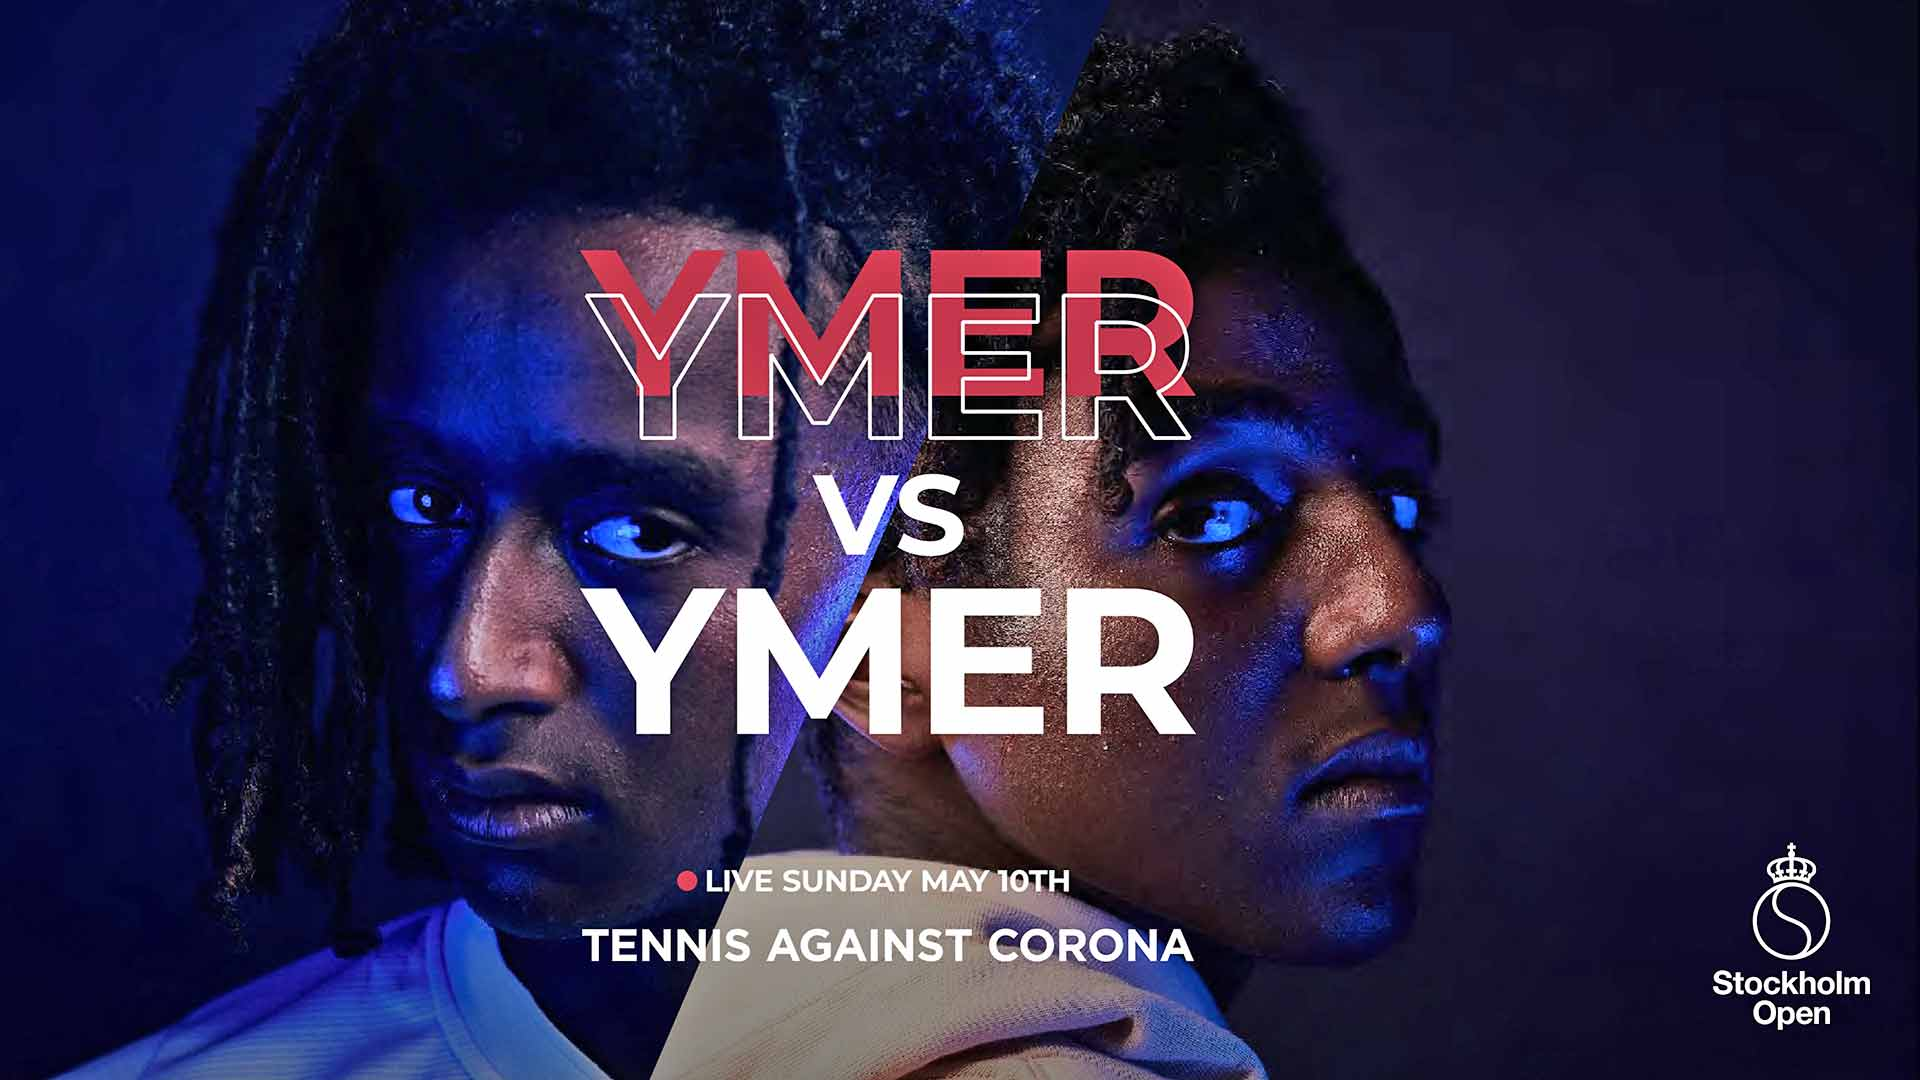 Mikael Ymer and Elias Ymer will contest a best-of-three set match at Tennis Against Corona in Stockholm.